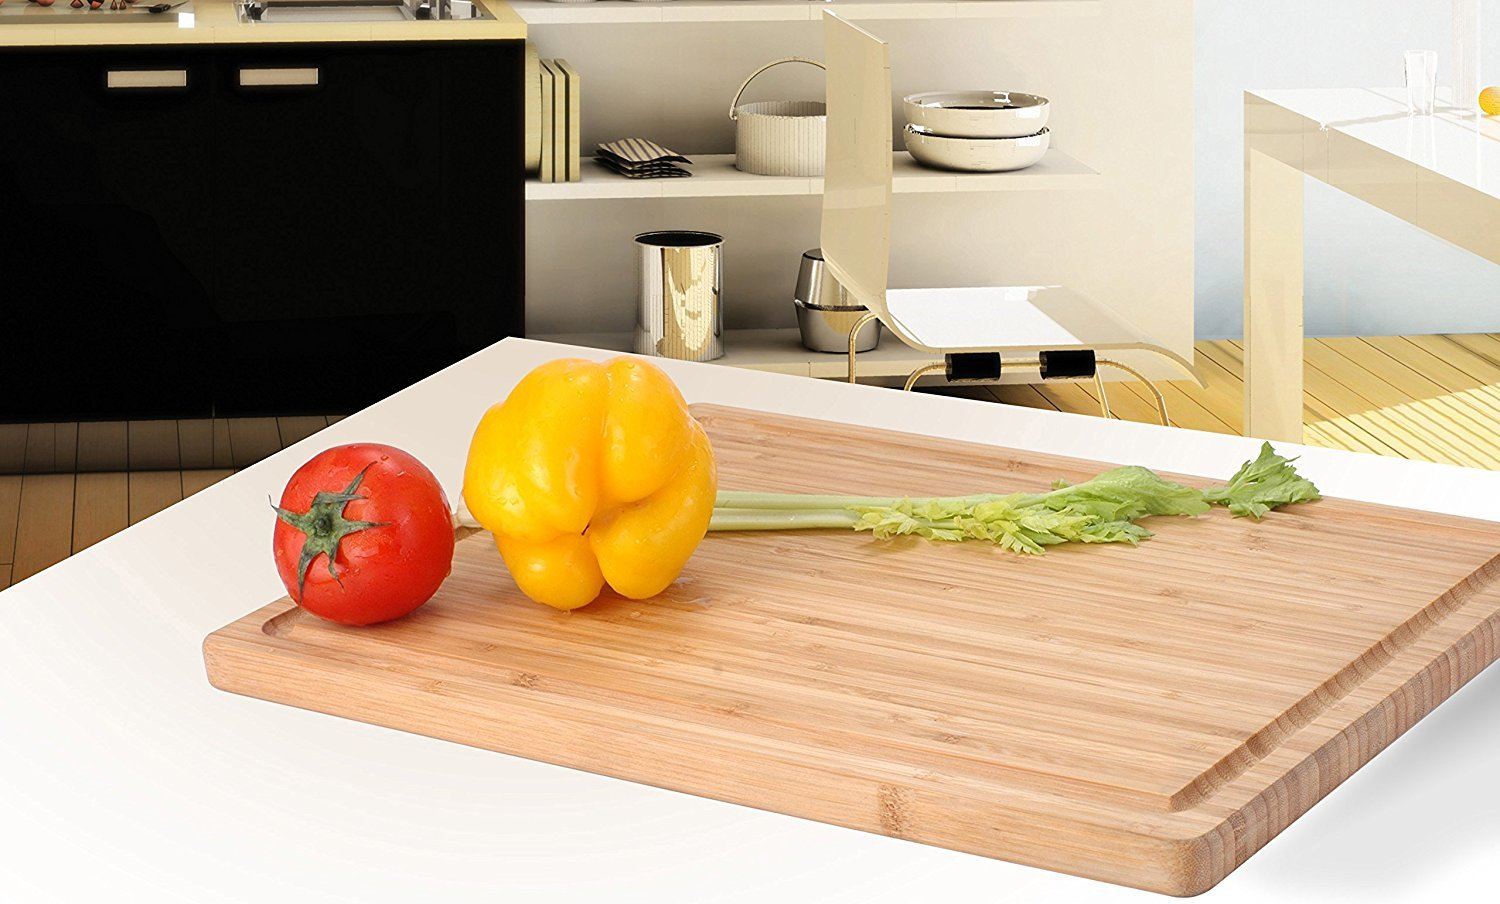 Utopia Kitchen Extra Large Bamboo Cutting Board (16.9 by 12 inch) by Utopia Kitchen (Image #3)